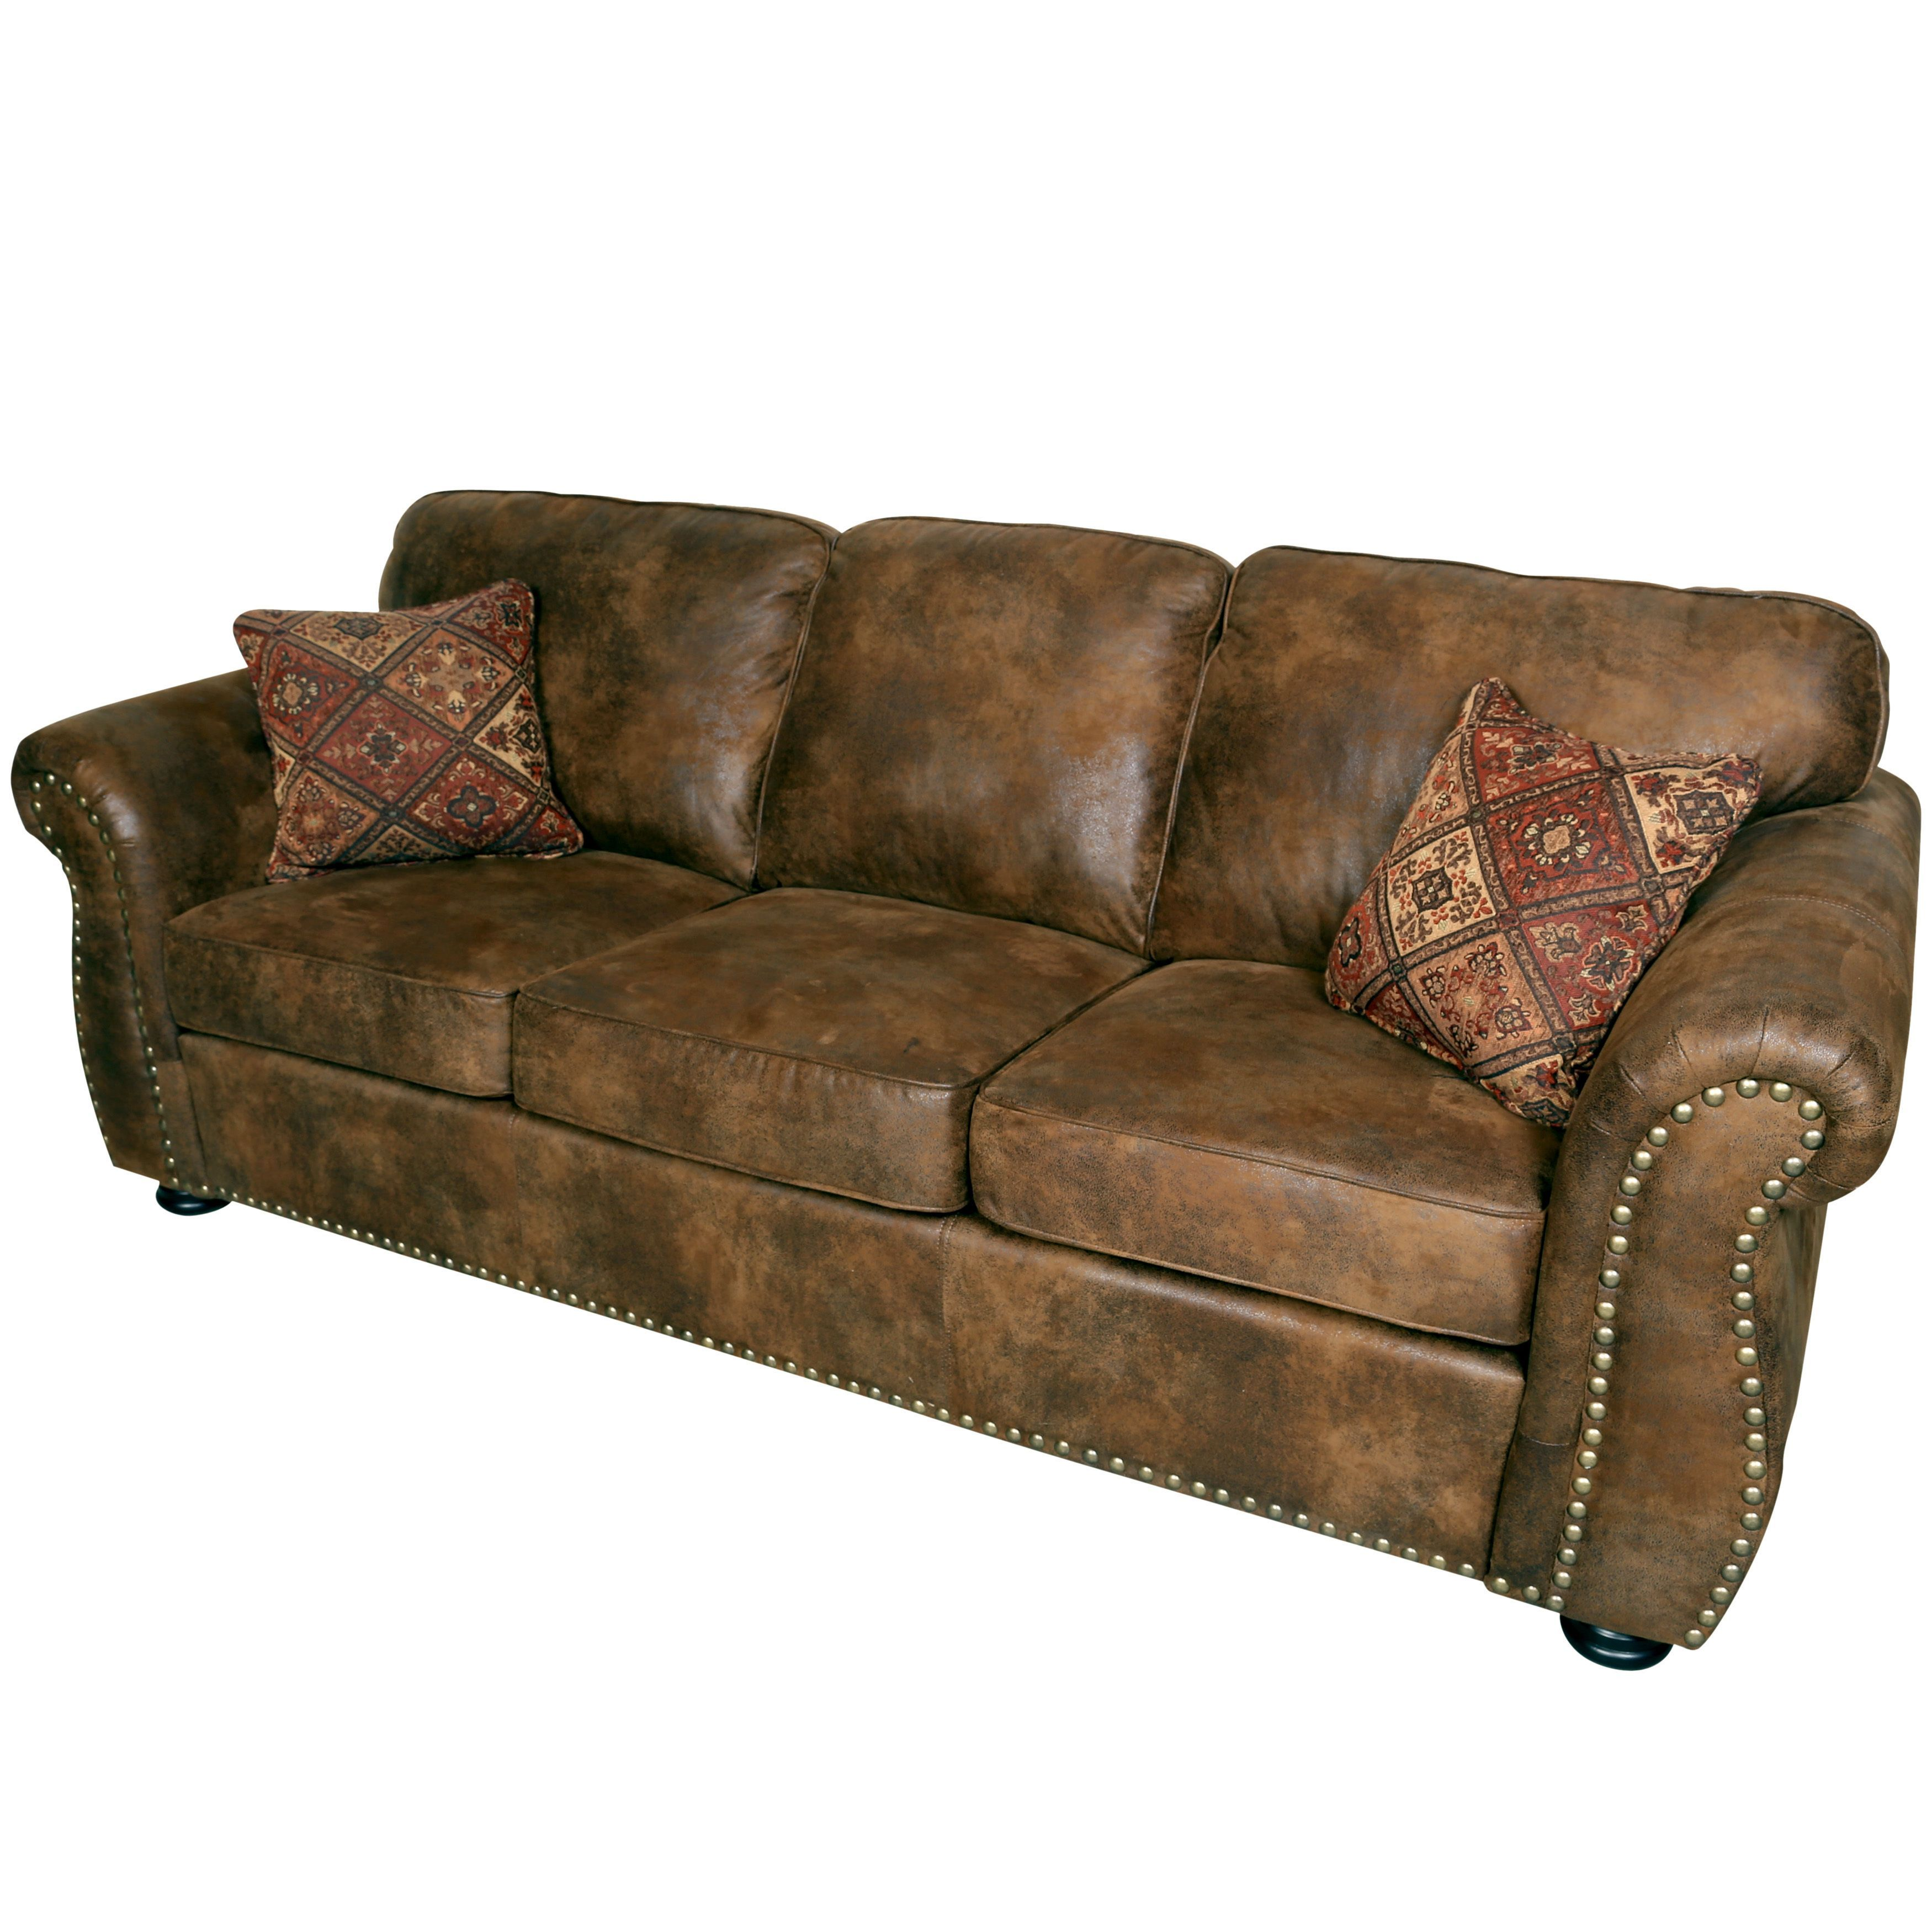 faux suede sofa cleaning instructions four seater with chaise porter elk river brown microfiber leather 2 woven accent pillows beige fabric